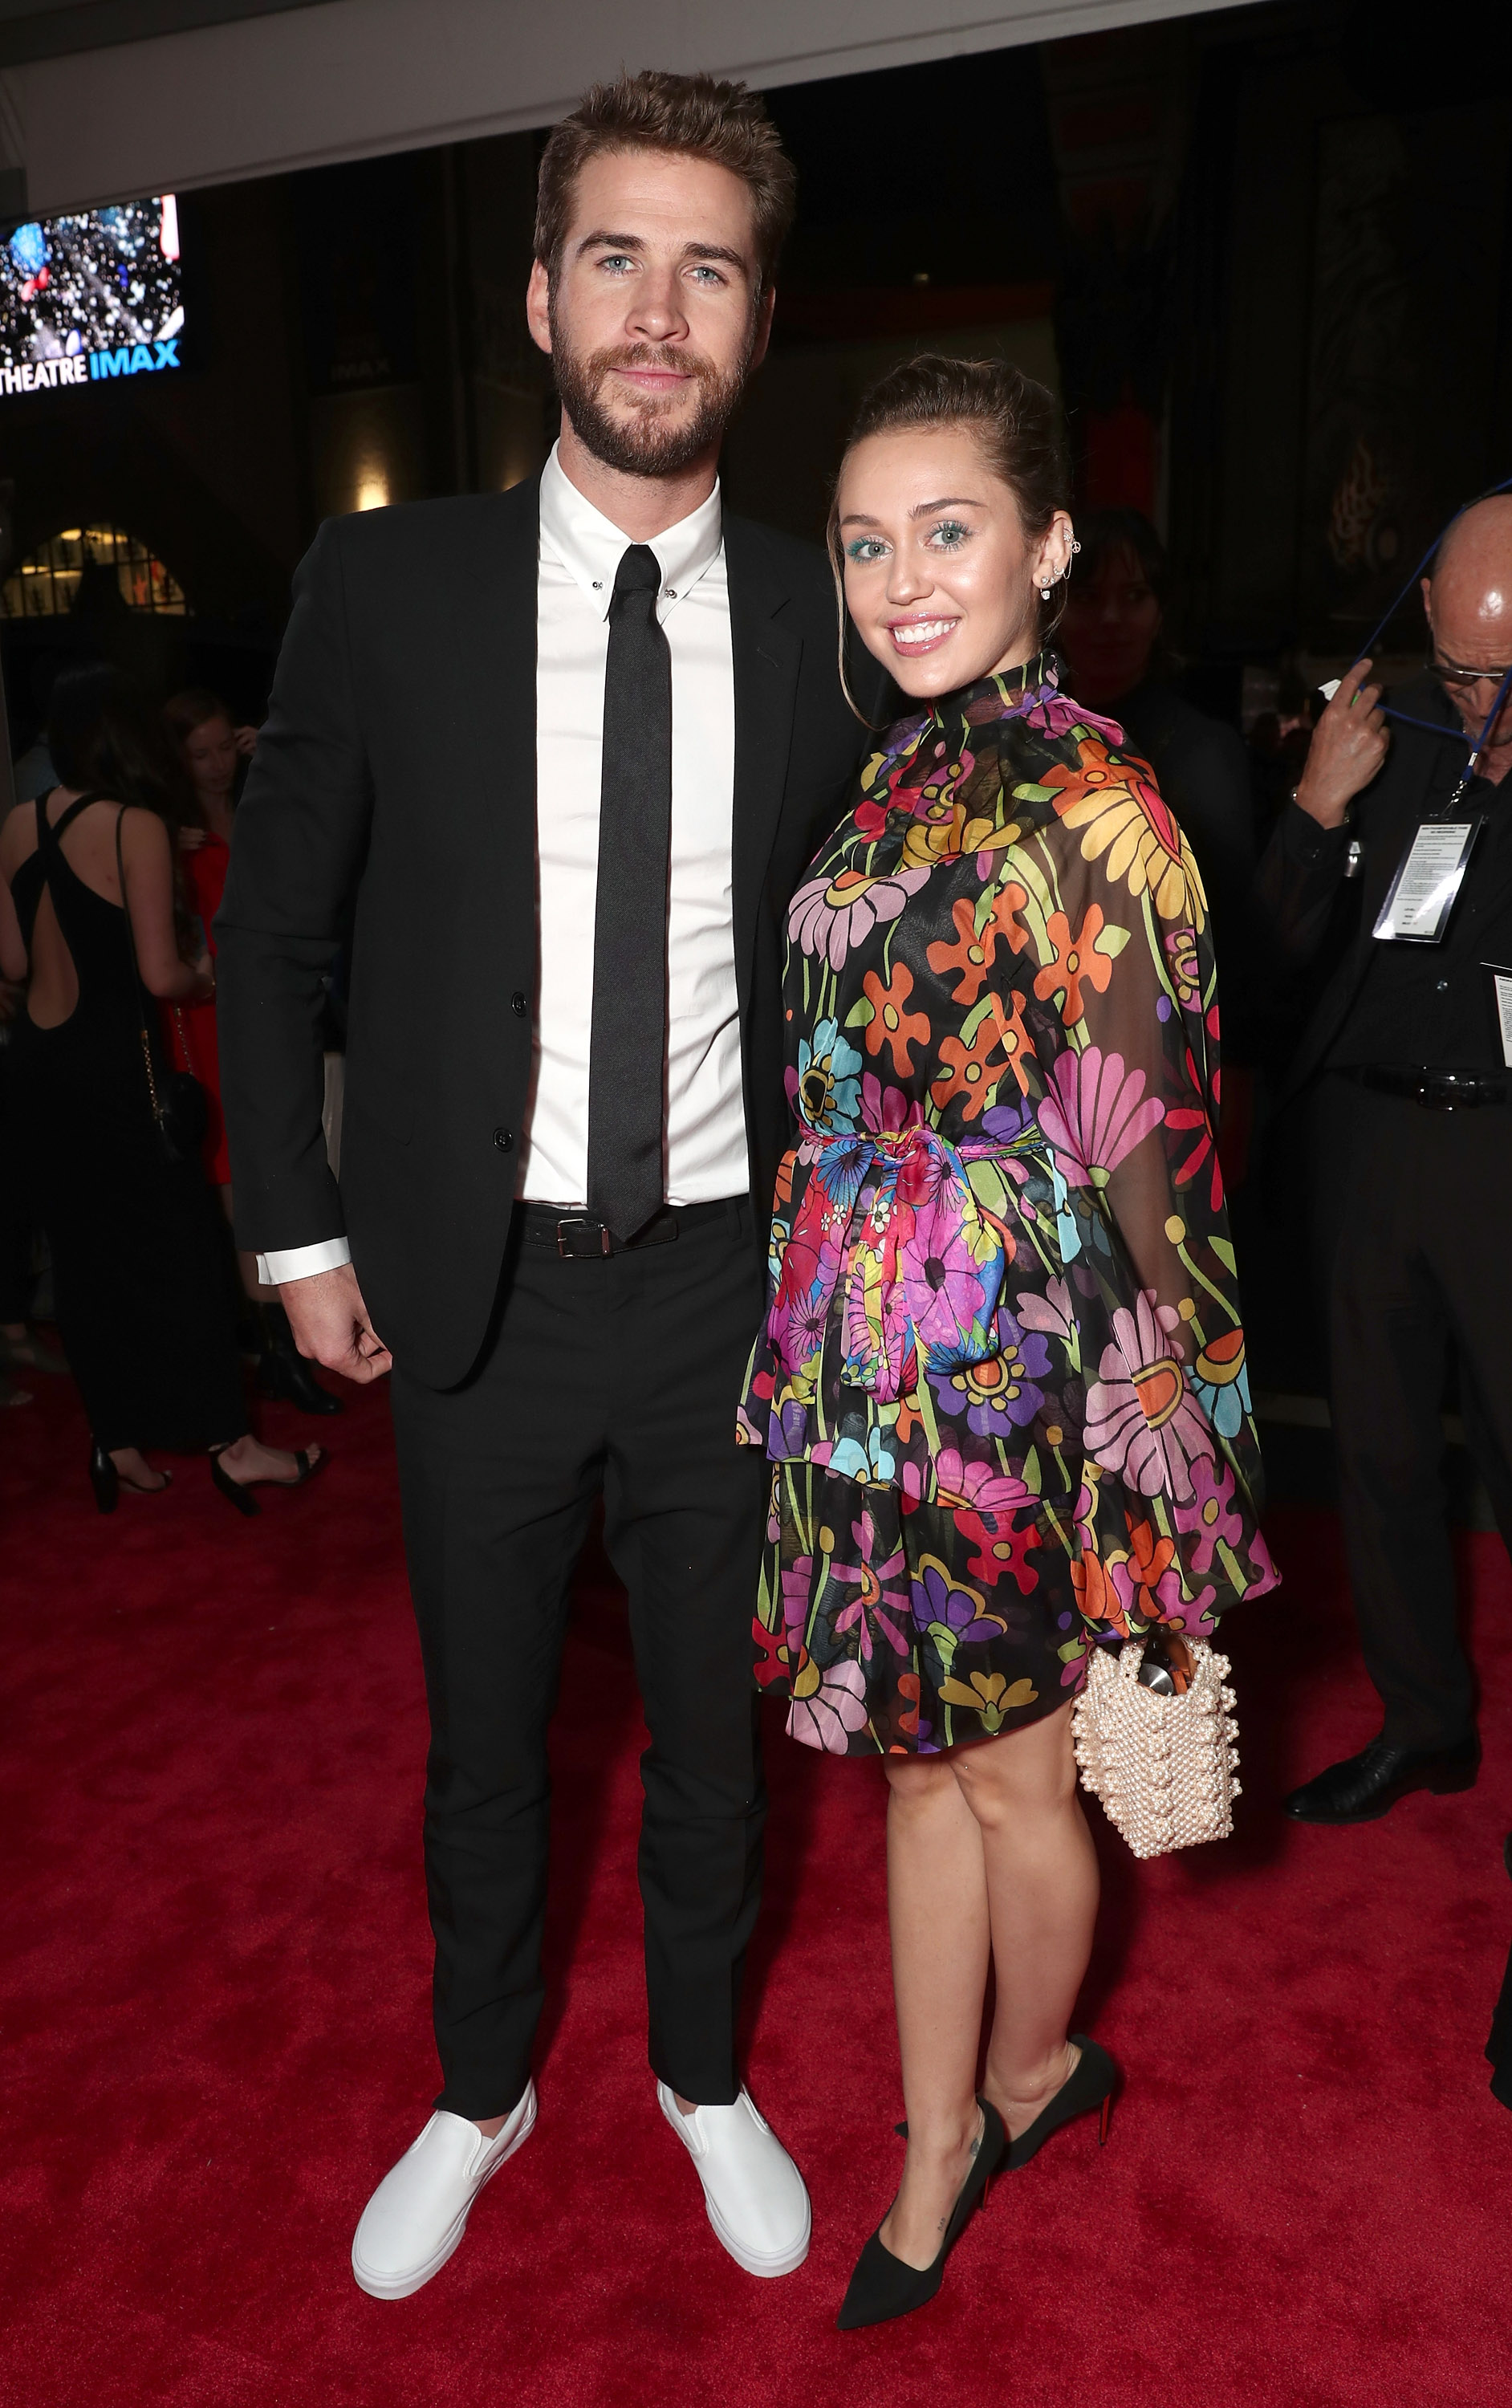 Miley Cyrus and Liam Hemsworth made a rare couples